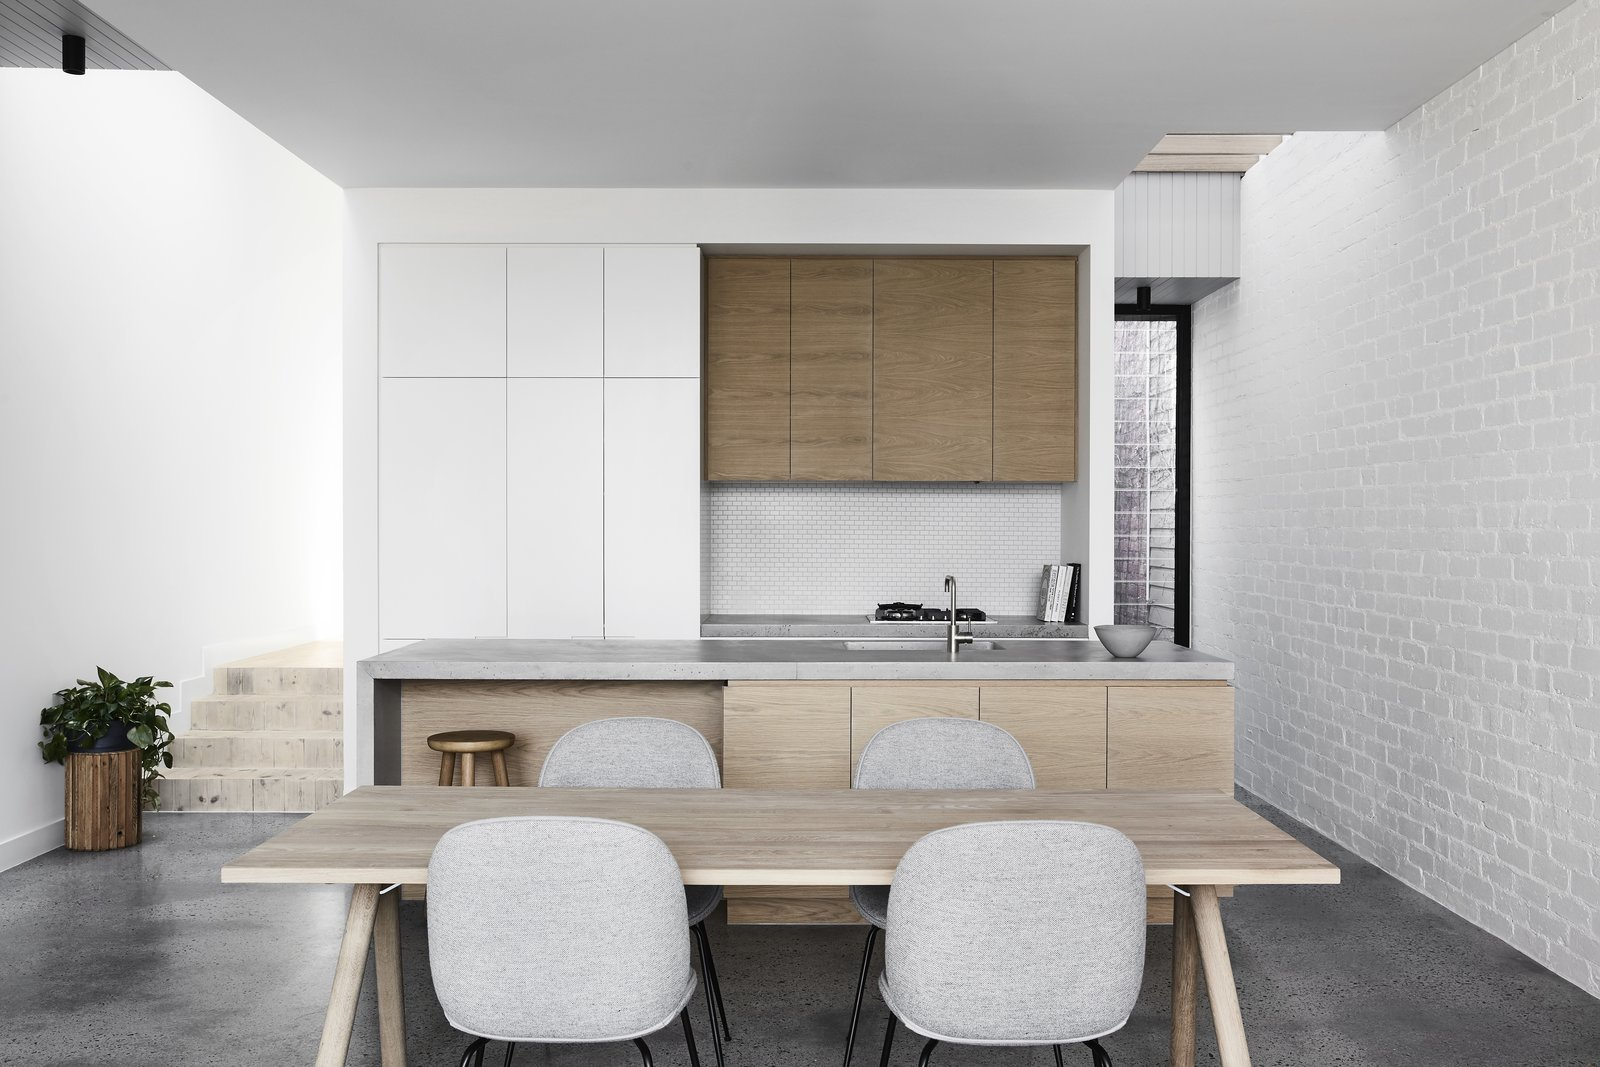 Kitchen, Wood, Concrete, White, Concrete, Cooktops, Ceiling, and Undermount A simple color palette of gray, white, and brown gives the home a sleek, Scandinavian-inspired vibe.    Best Kitchen Concrete Concrete Photos from A Historic Melbourne Home Is Respectfully Modernized For a Young Family